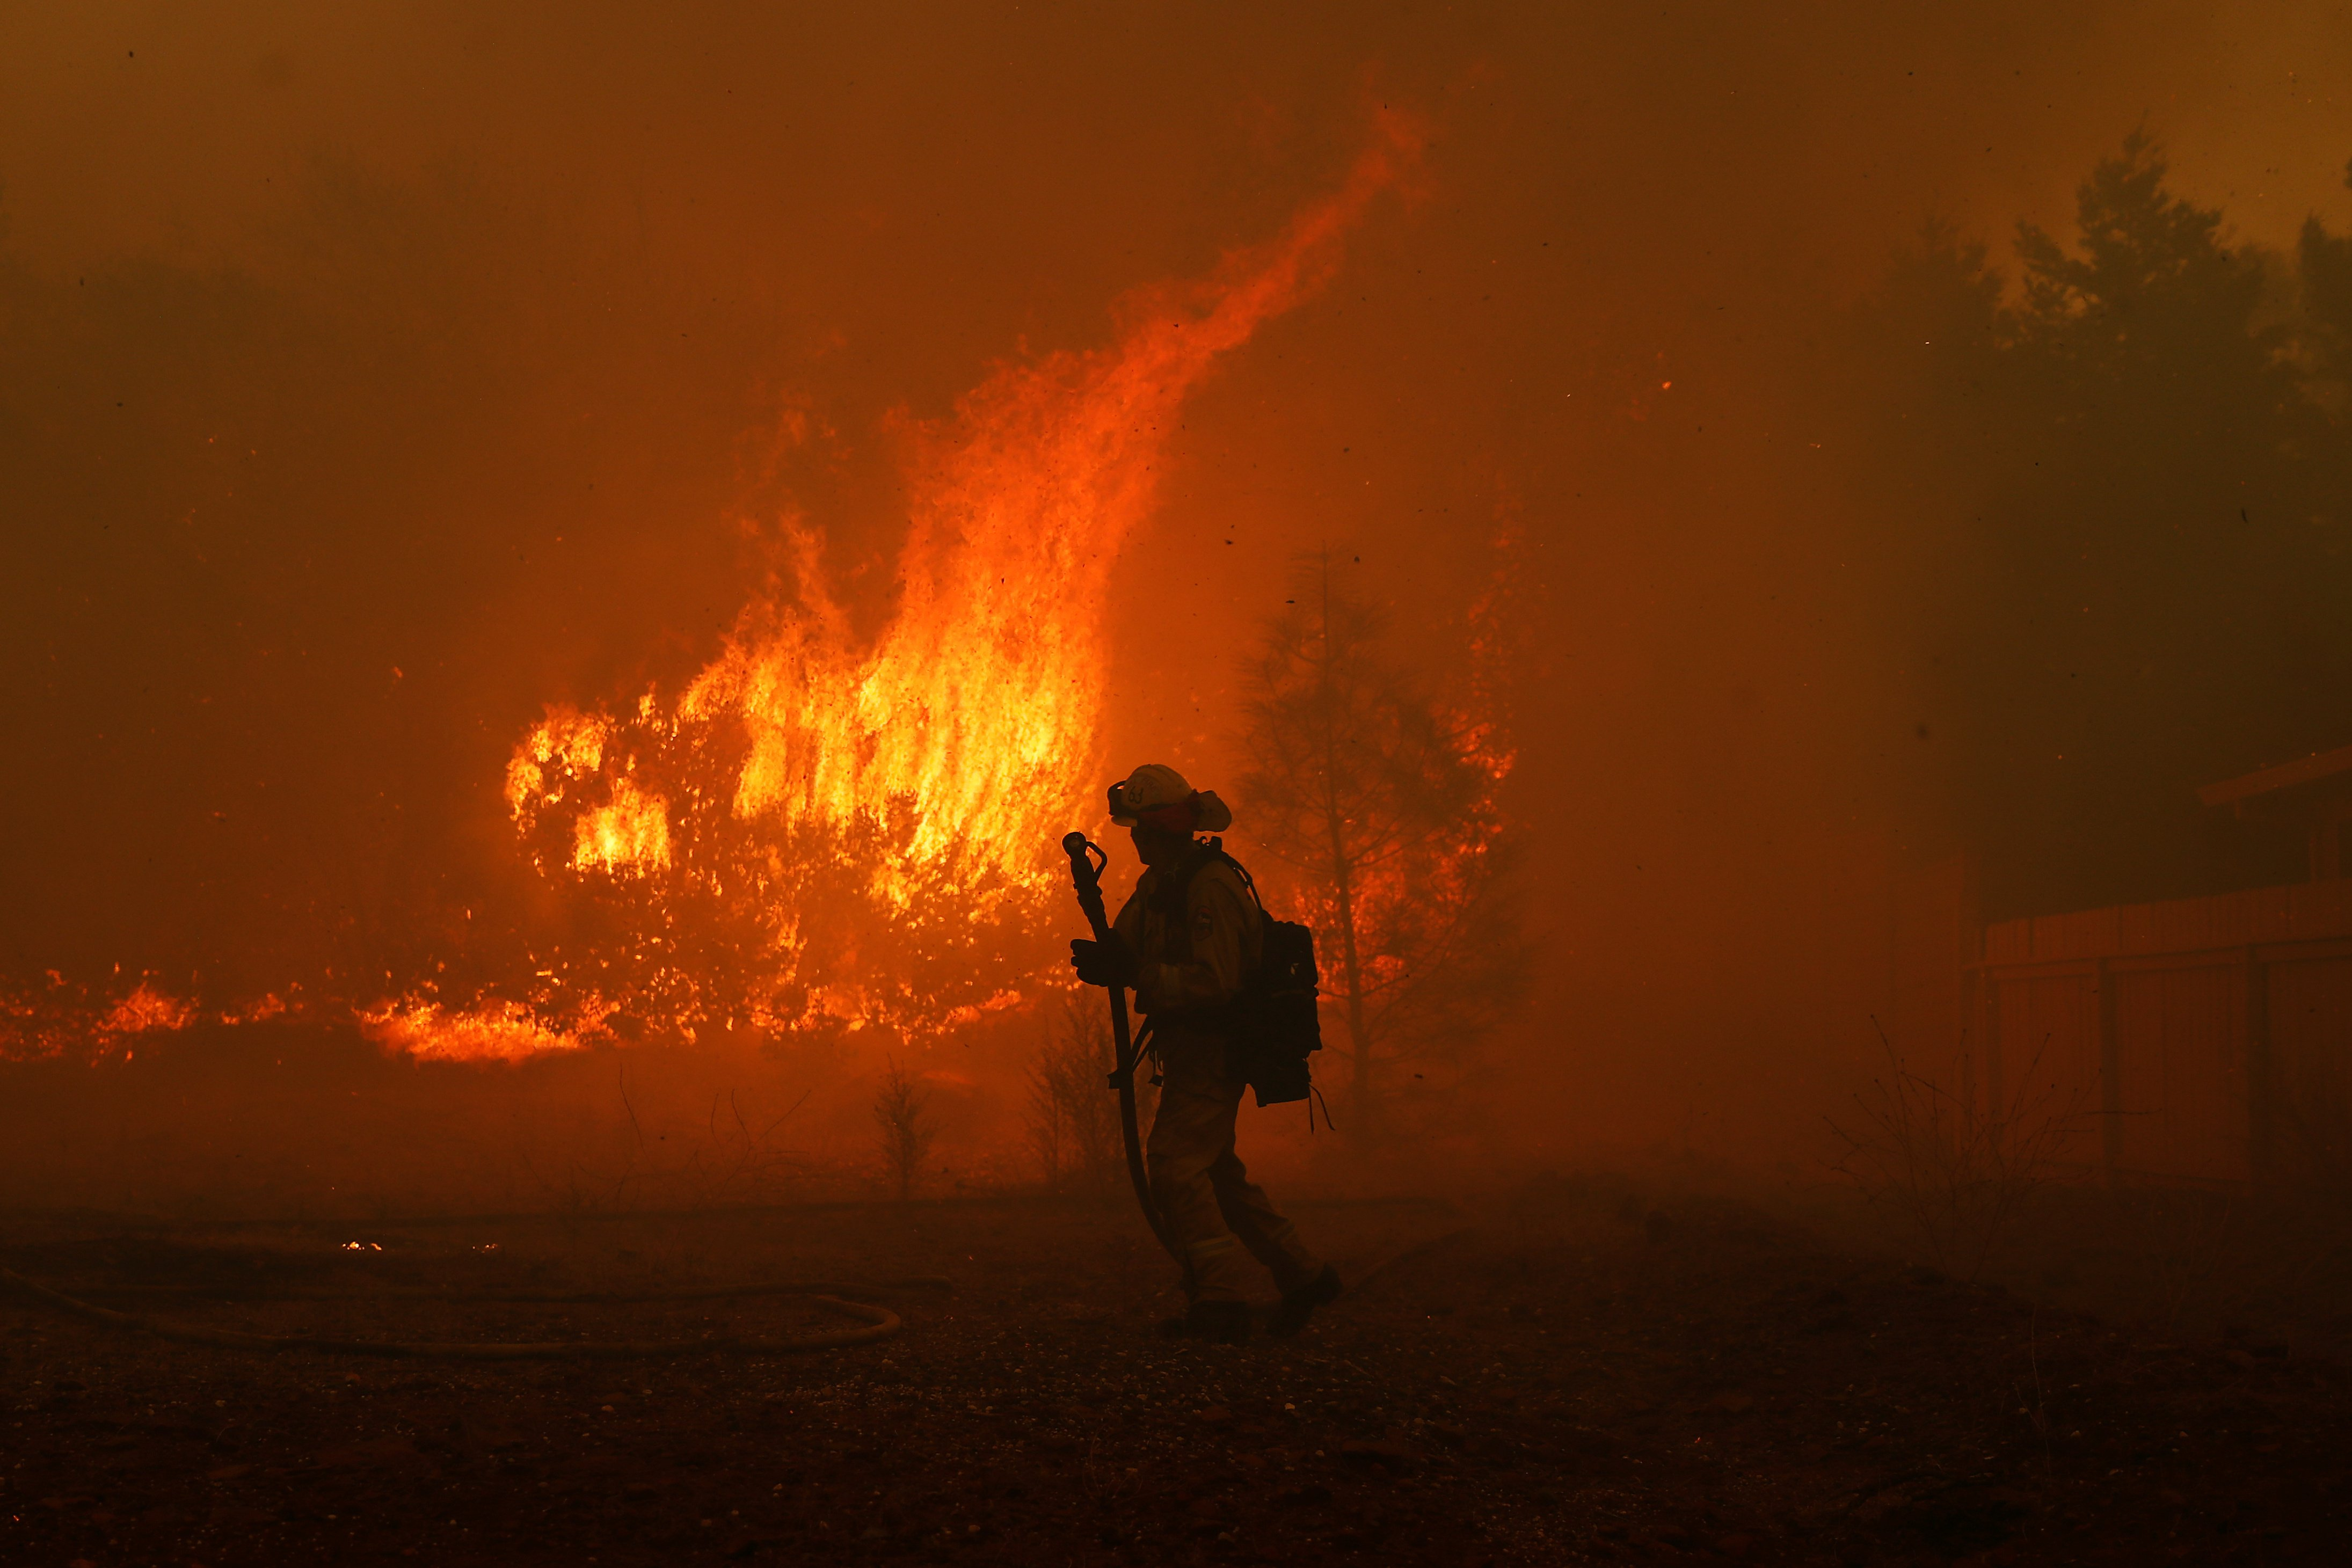 A Cal Fire firefighter monitors a fire near a home while battling the Camp Fire in Paradise